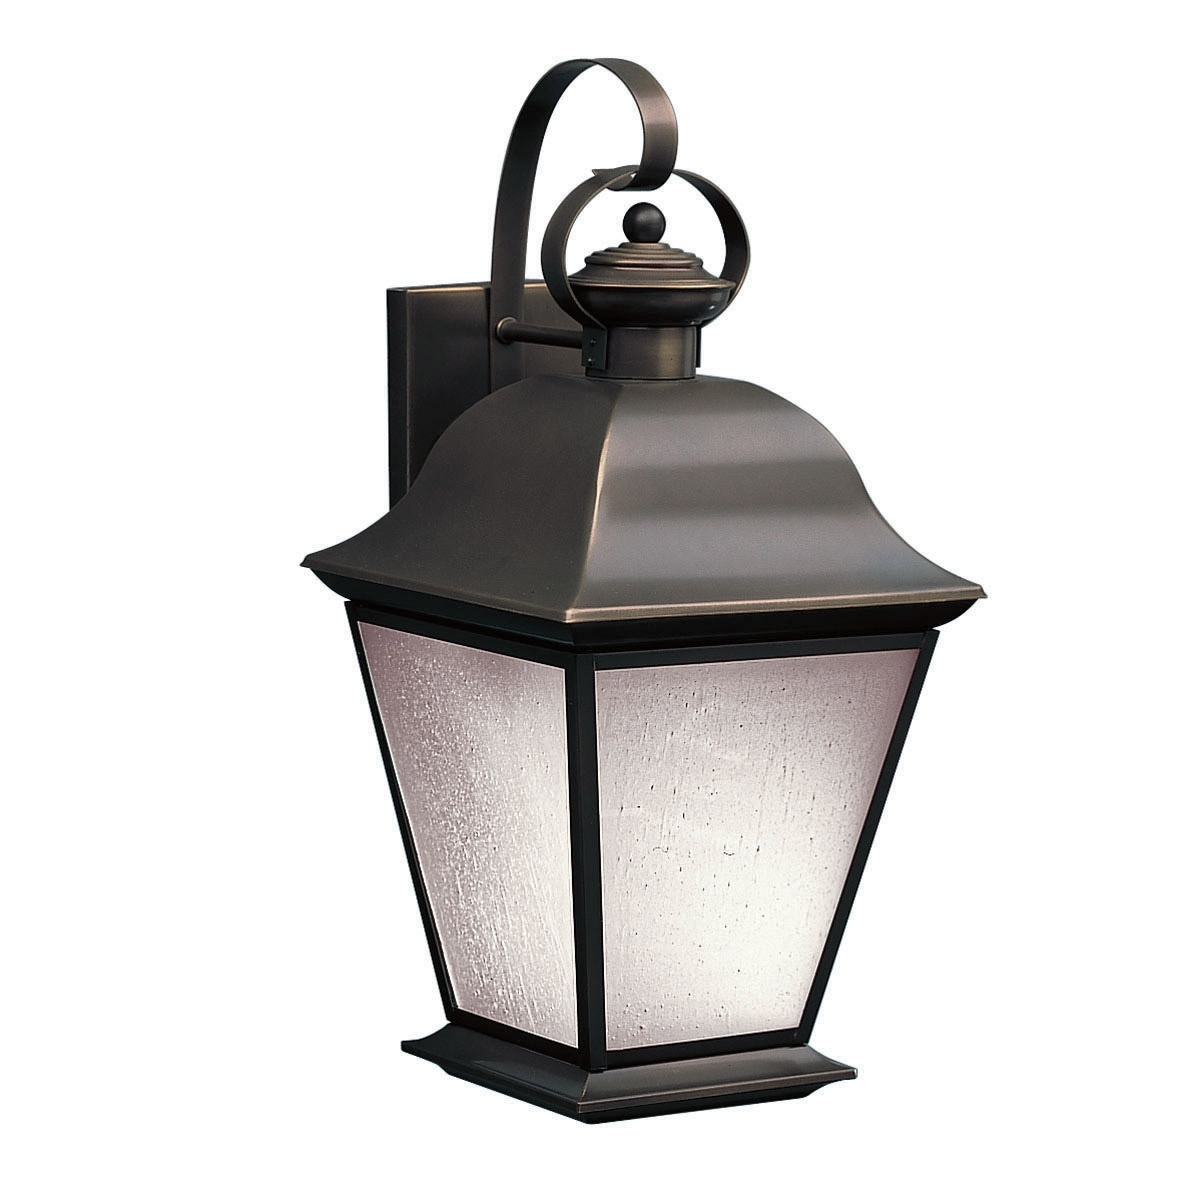 Popular Outdoor Mounted Lanterns Pertaining To Wall Lights Design: Solar Wall Mounted Outdoor Lights In, Solar (View 13 of 20)